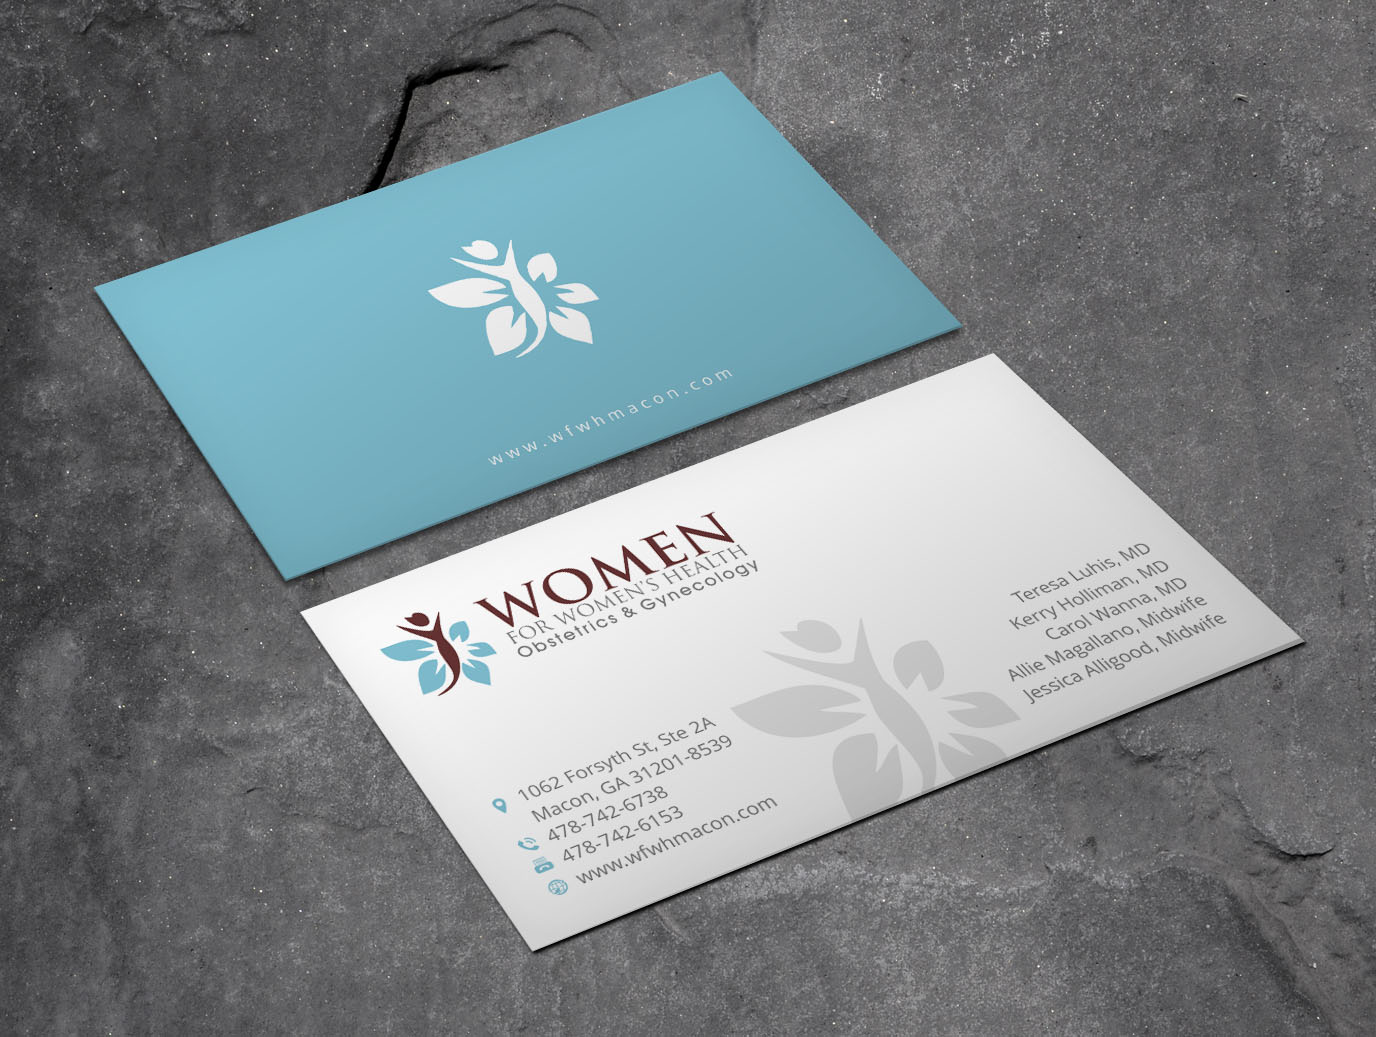 Personable elegant business business card design for women for business card design by xpert for women for womens health design 15723194 colourmoves